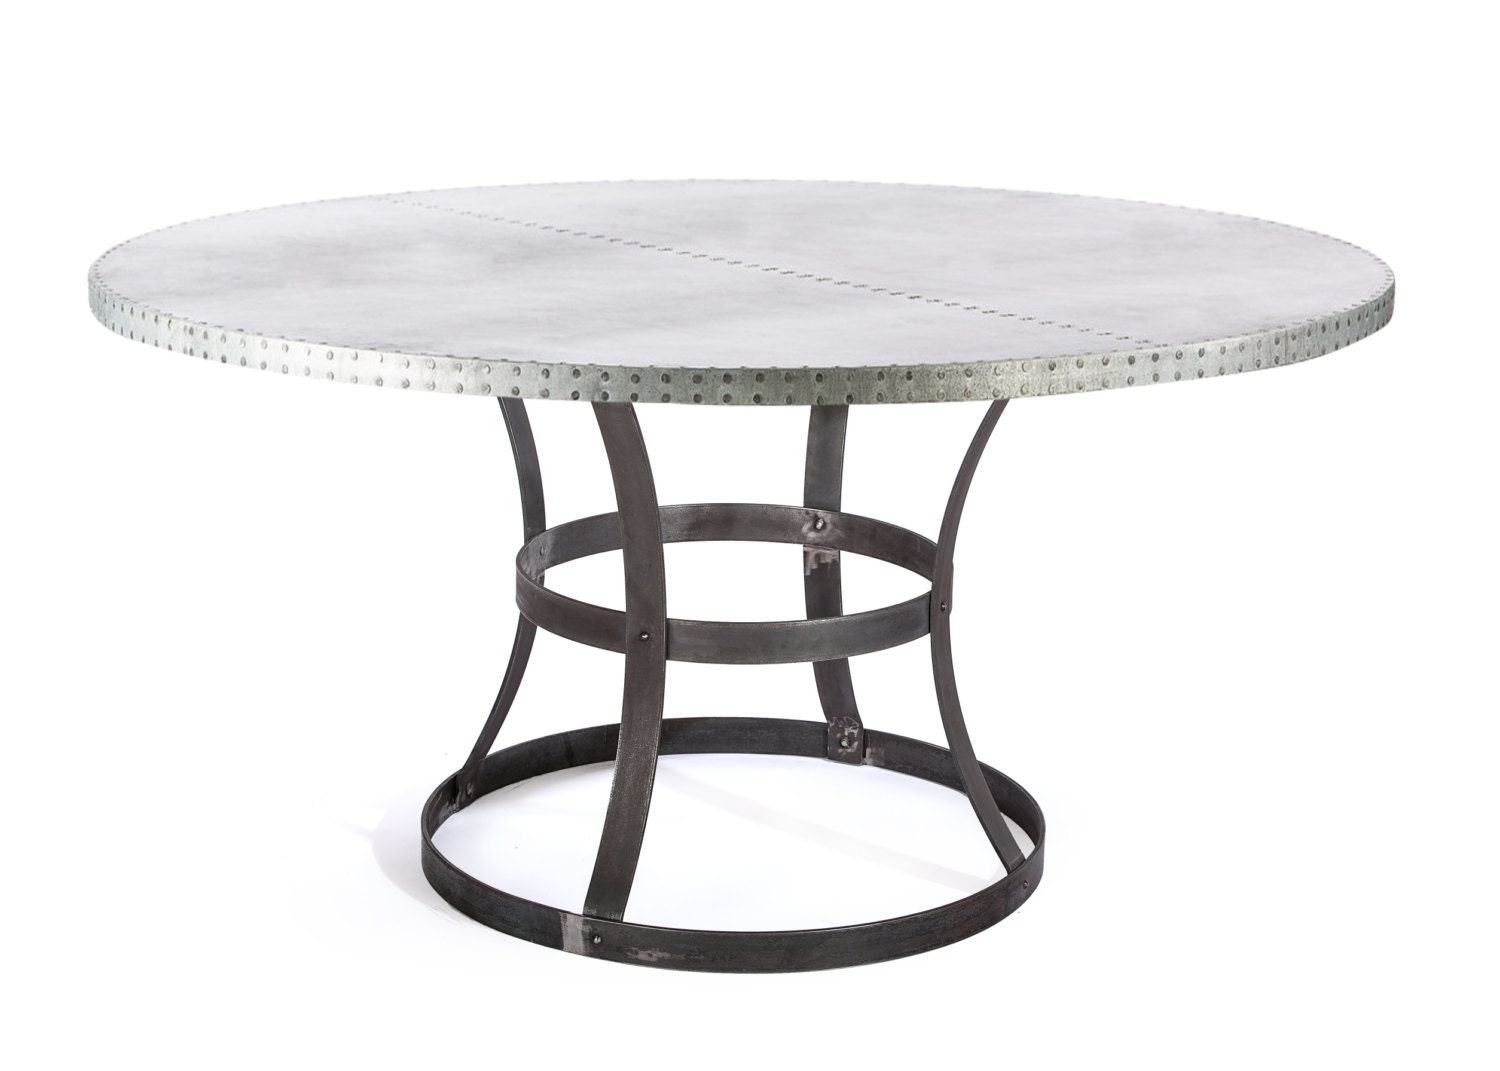 Zinc Table Zinc Dining Table The Madera Round Zinc Top : ilfullxfull8856963016b87 from www.etsy.com size 1500 x 1071 jpeg 97kB